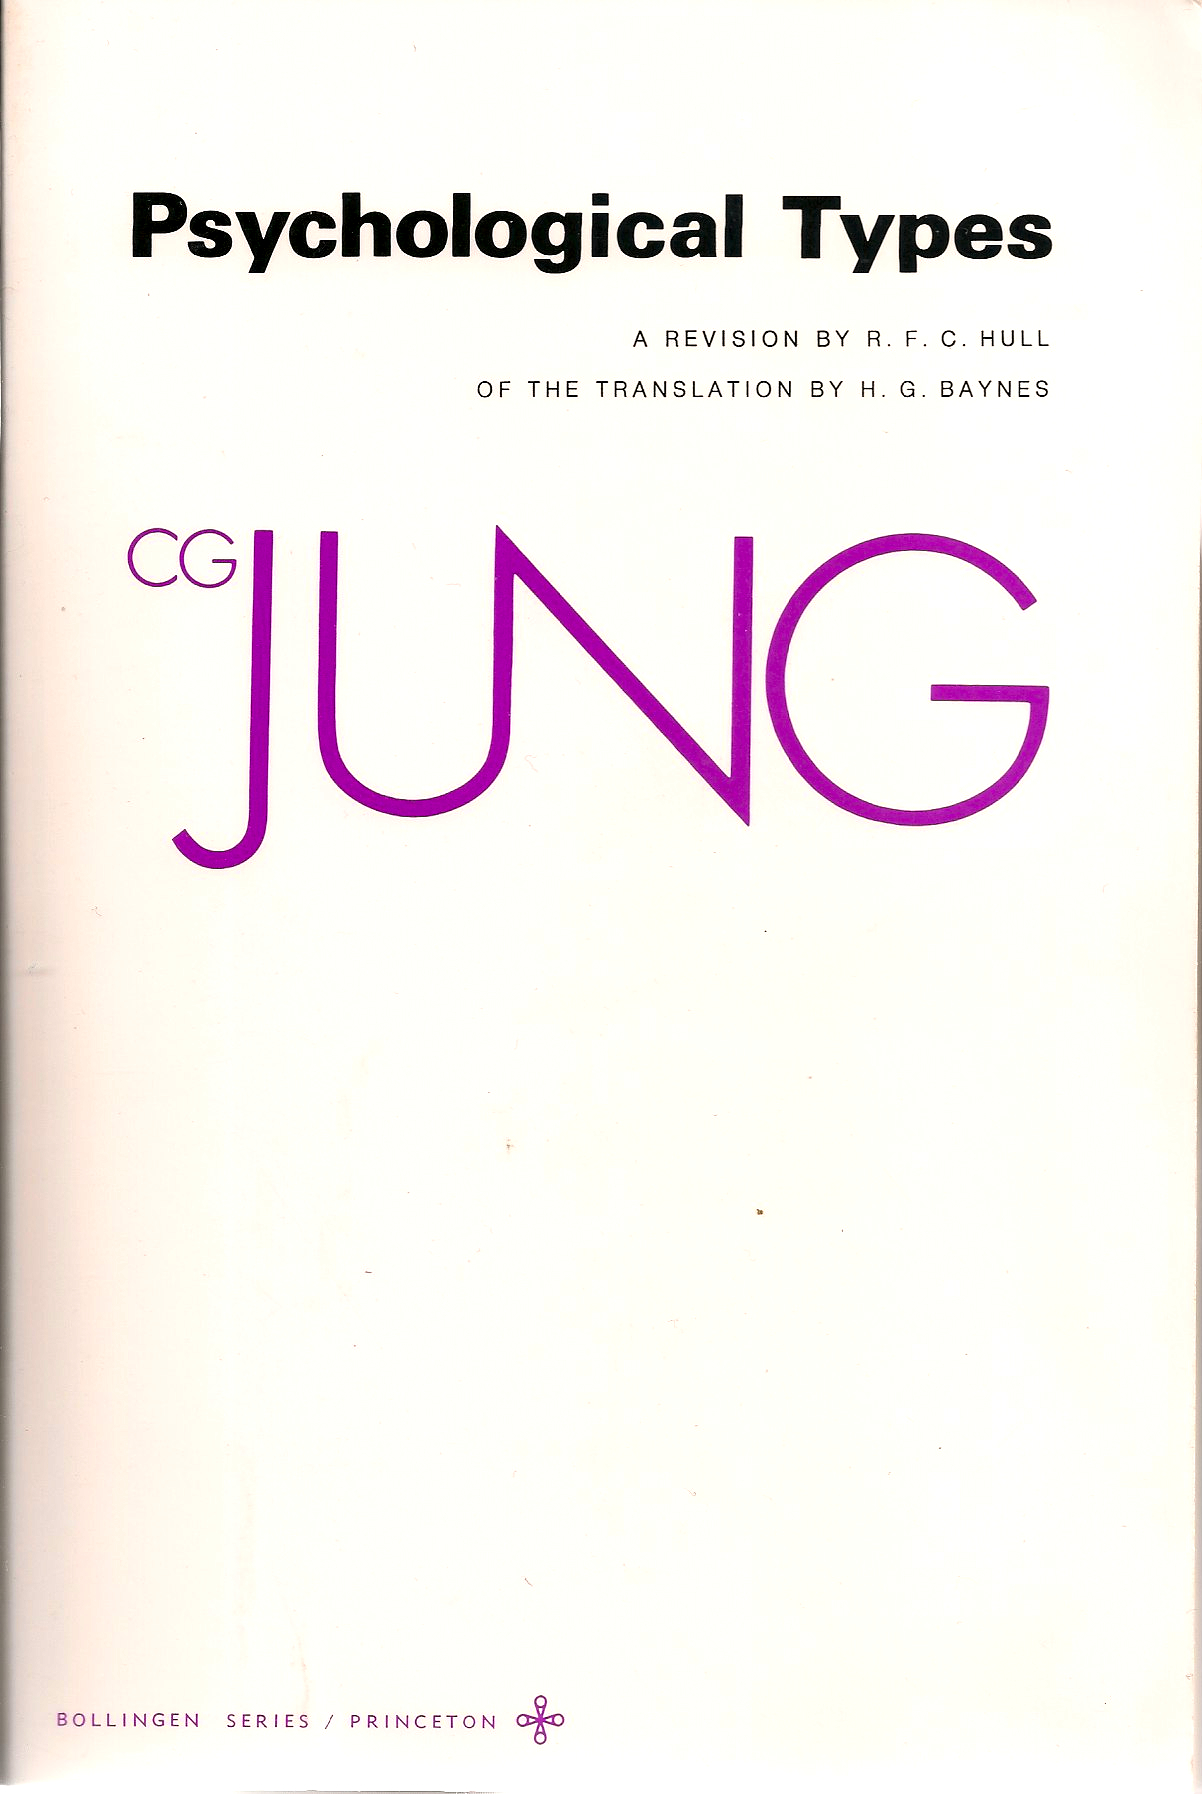 jungian psychology psychological types end of the game